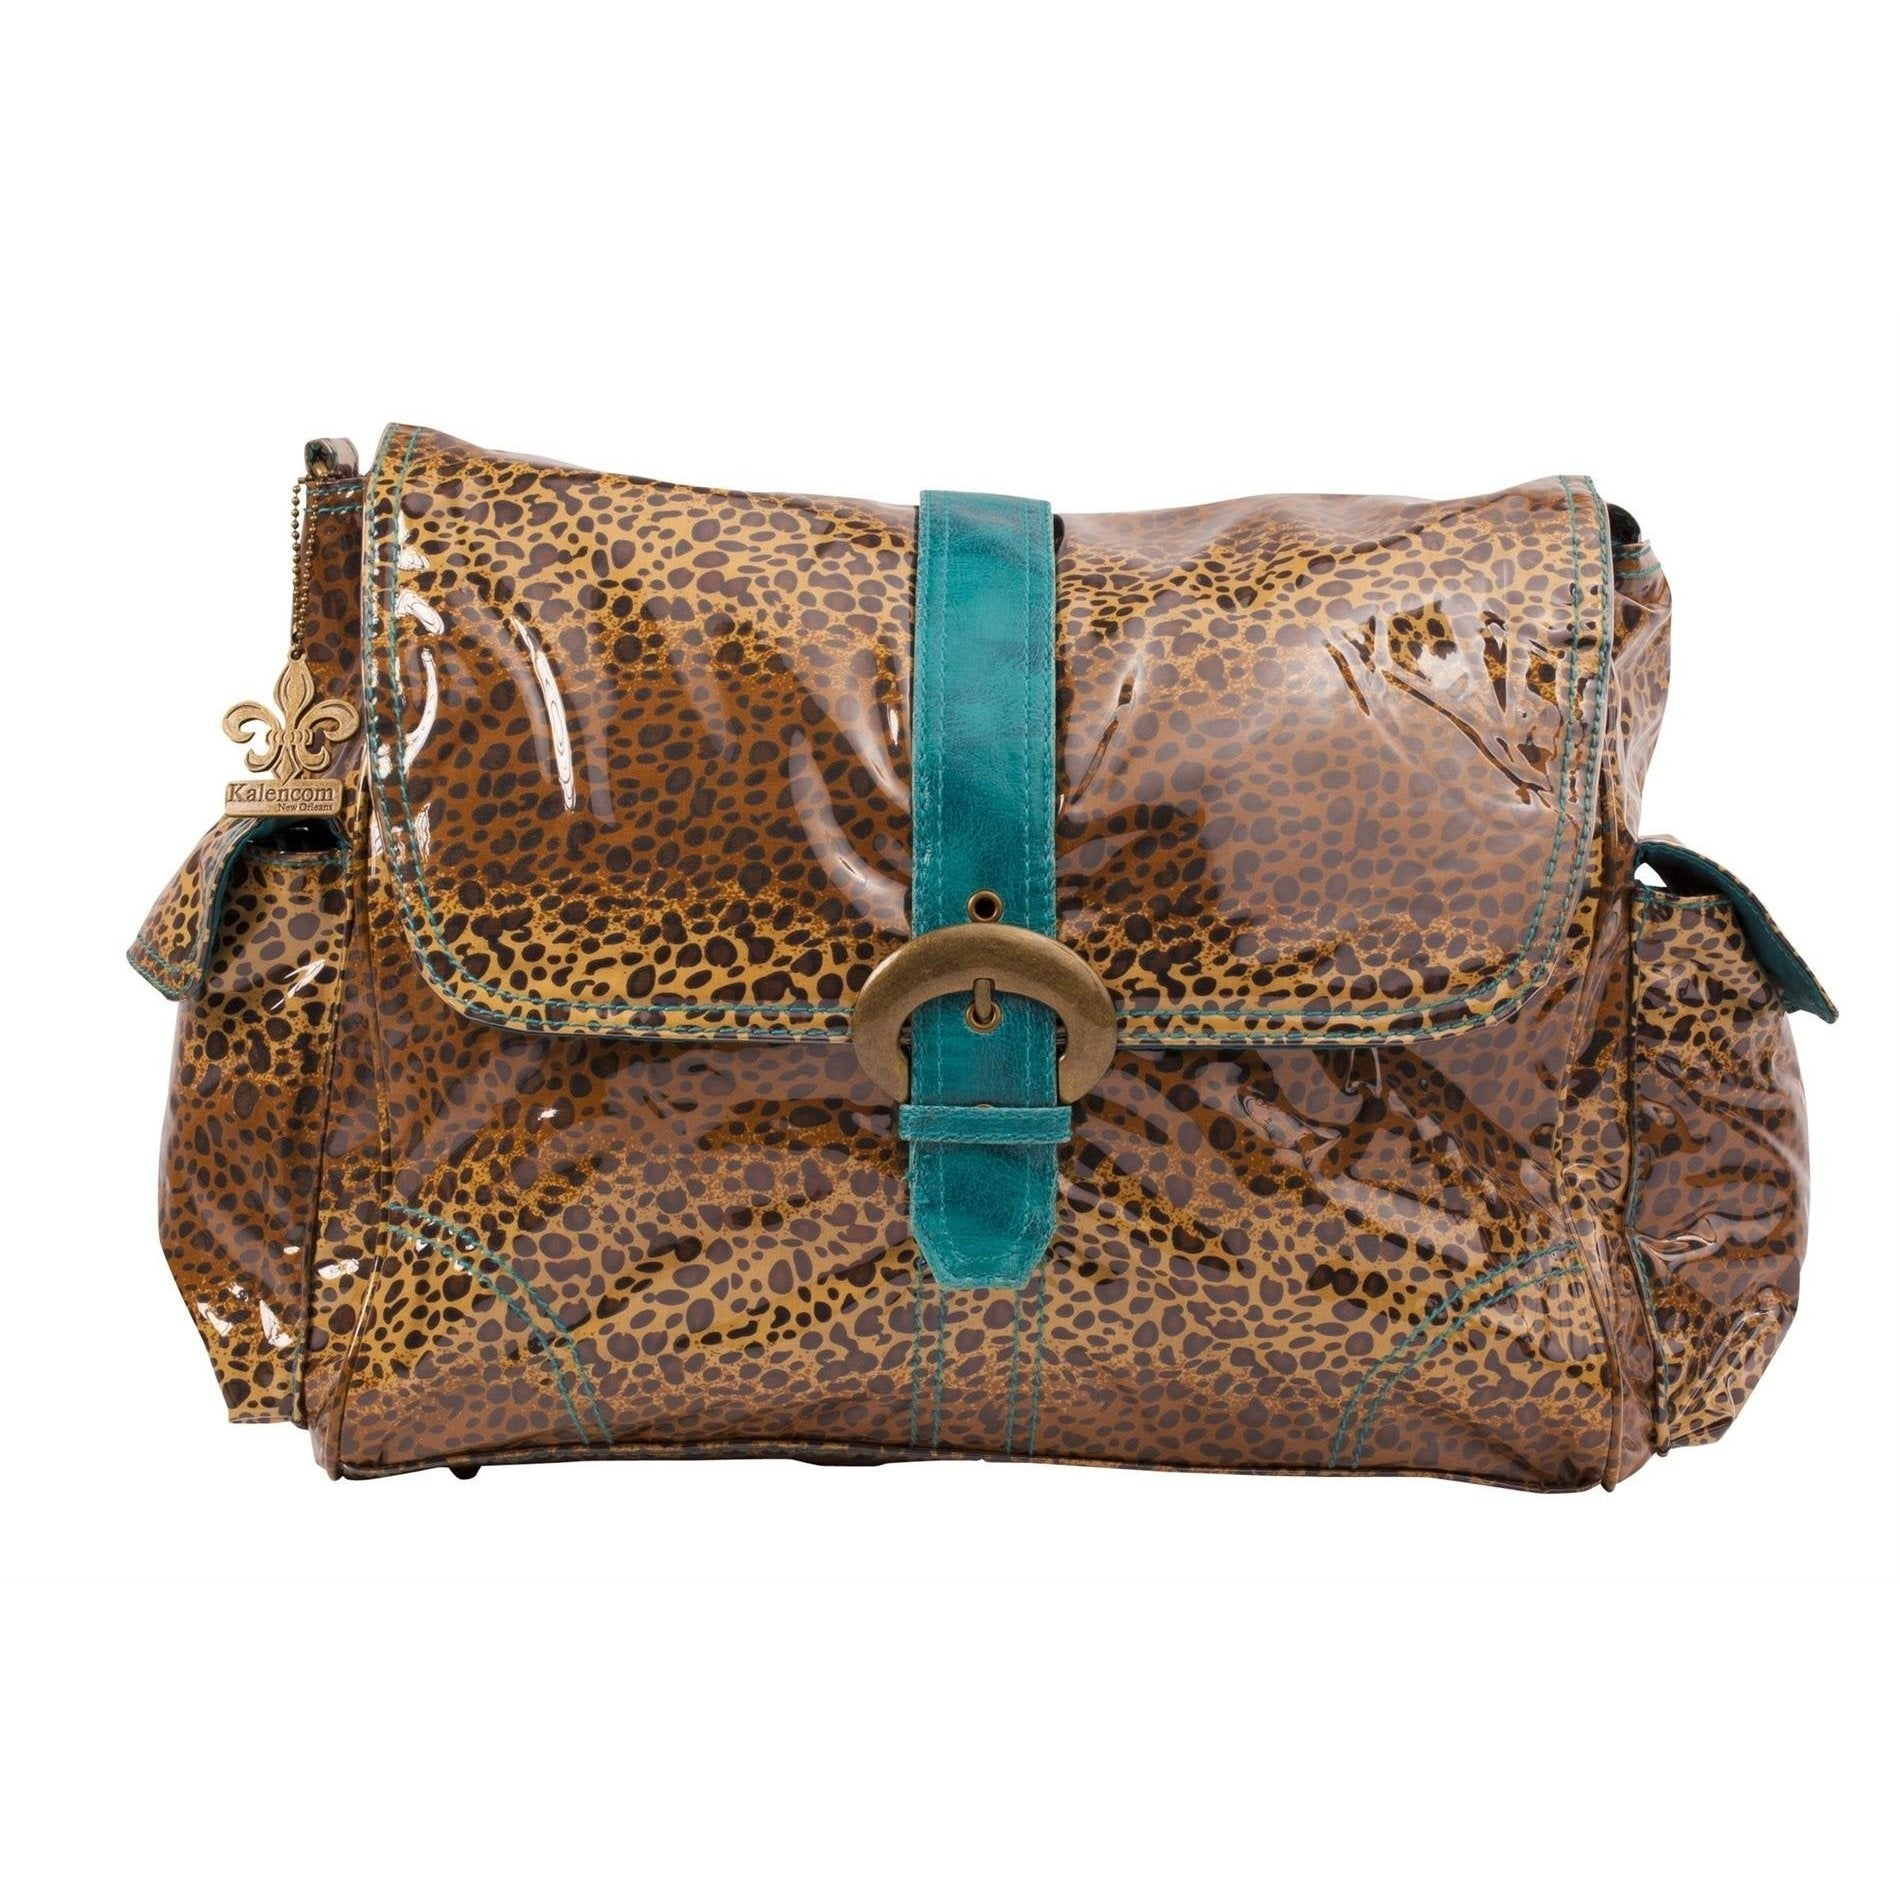 Leopard - Teal Laminated Buckle Diaper Bag | Style 2960 - Kalencom-Diaper Bags-Jack and Jill Boutique